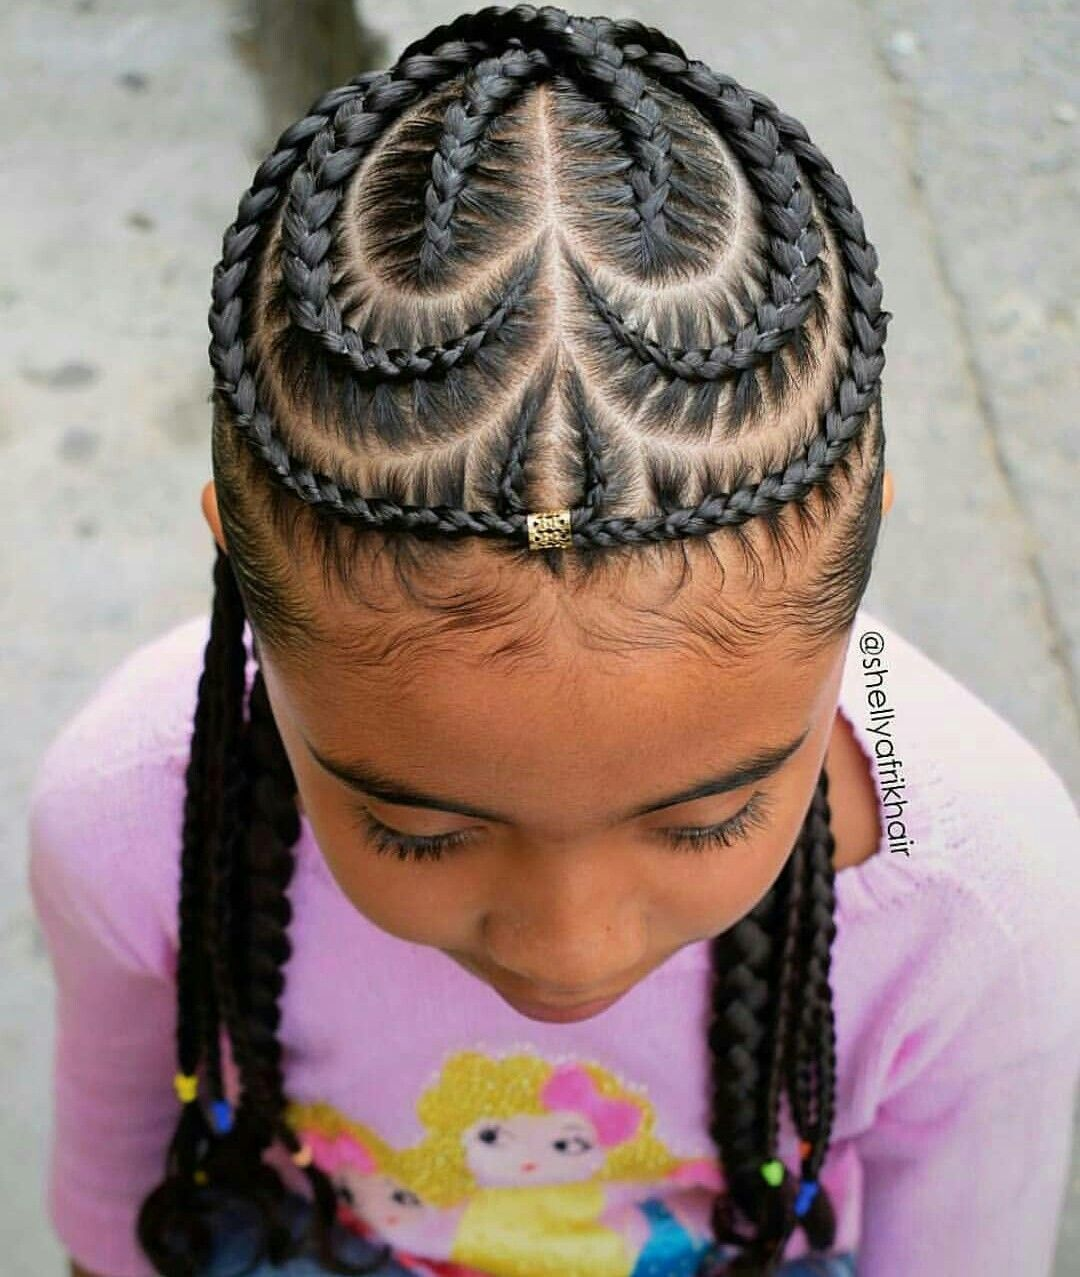 37 Braids For Black Kids Ideas Braids For Kids Kids Braided Hairstyles Kid Braid Styles